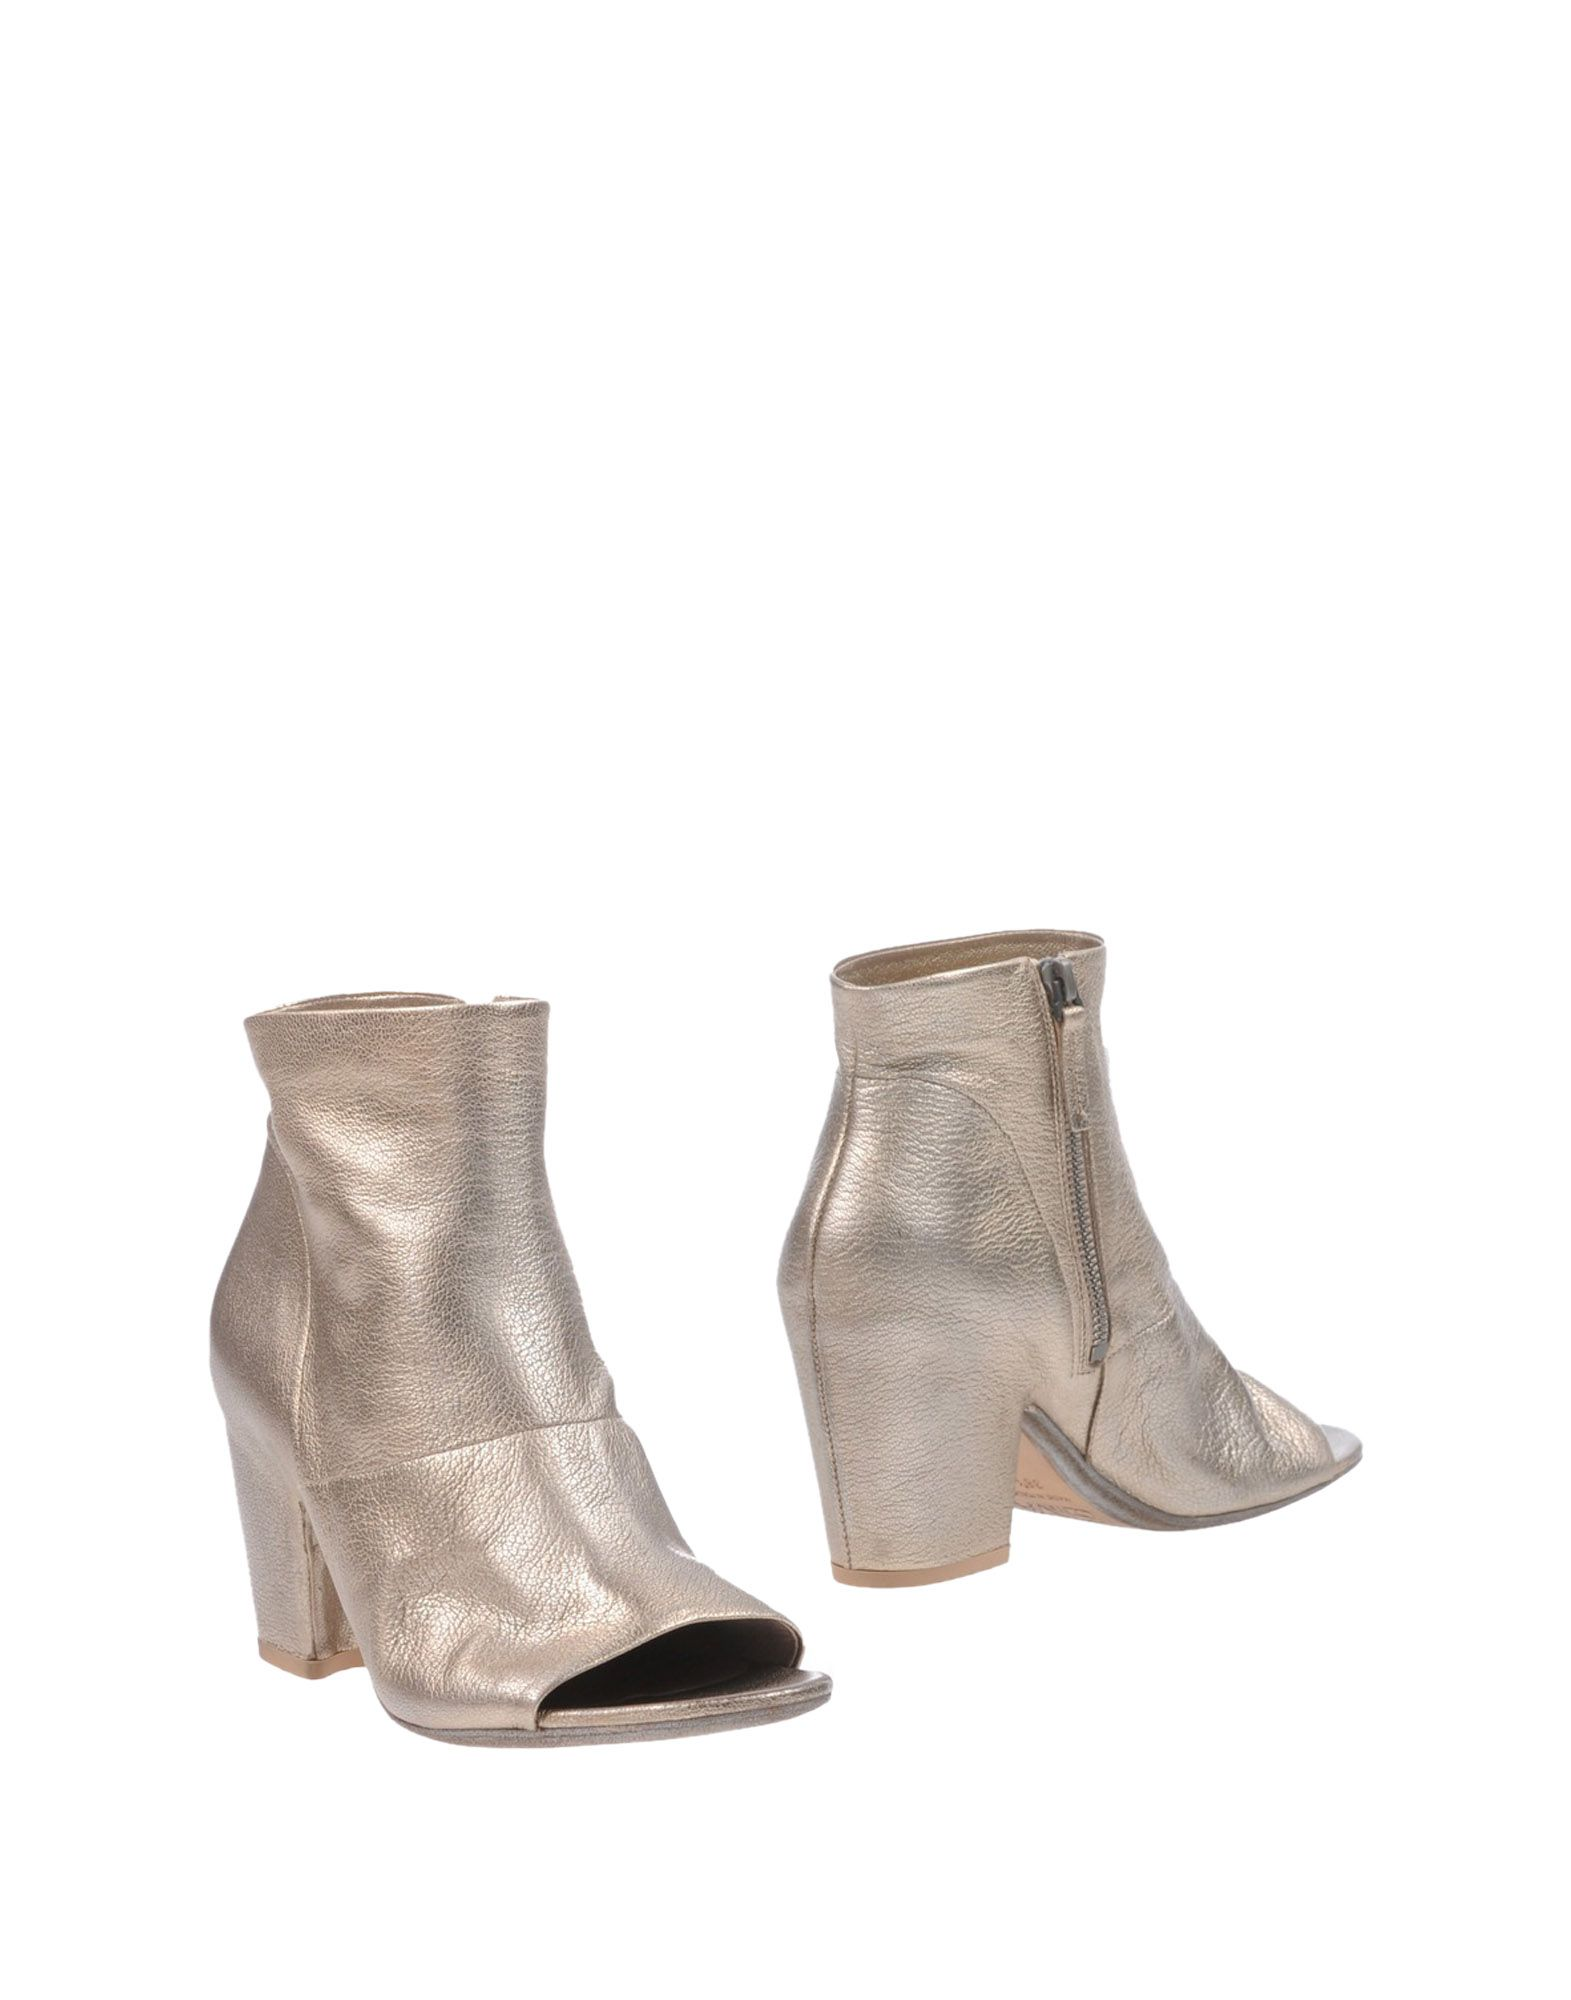 Bottine Settima Femme - Bottines Settima sur